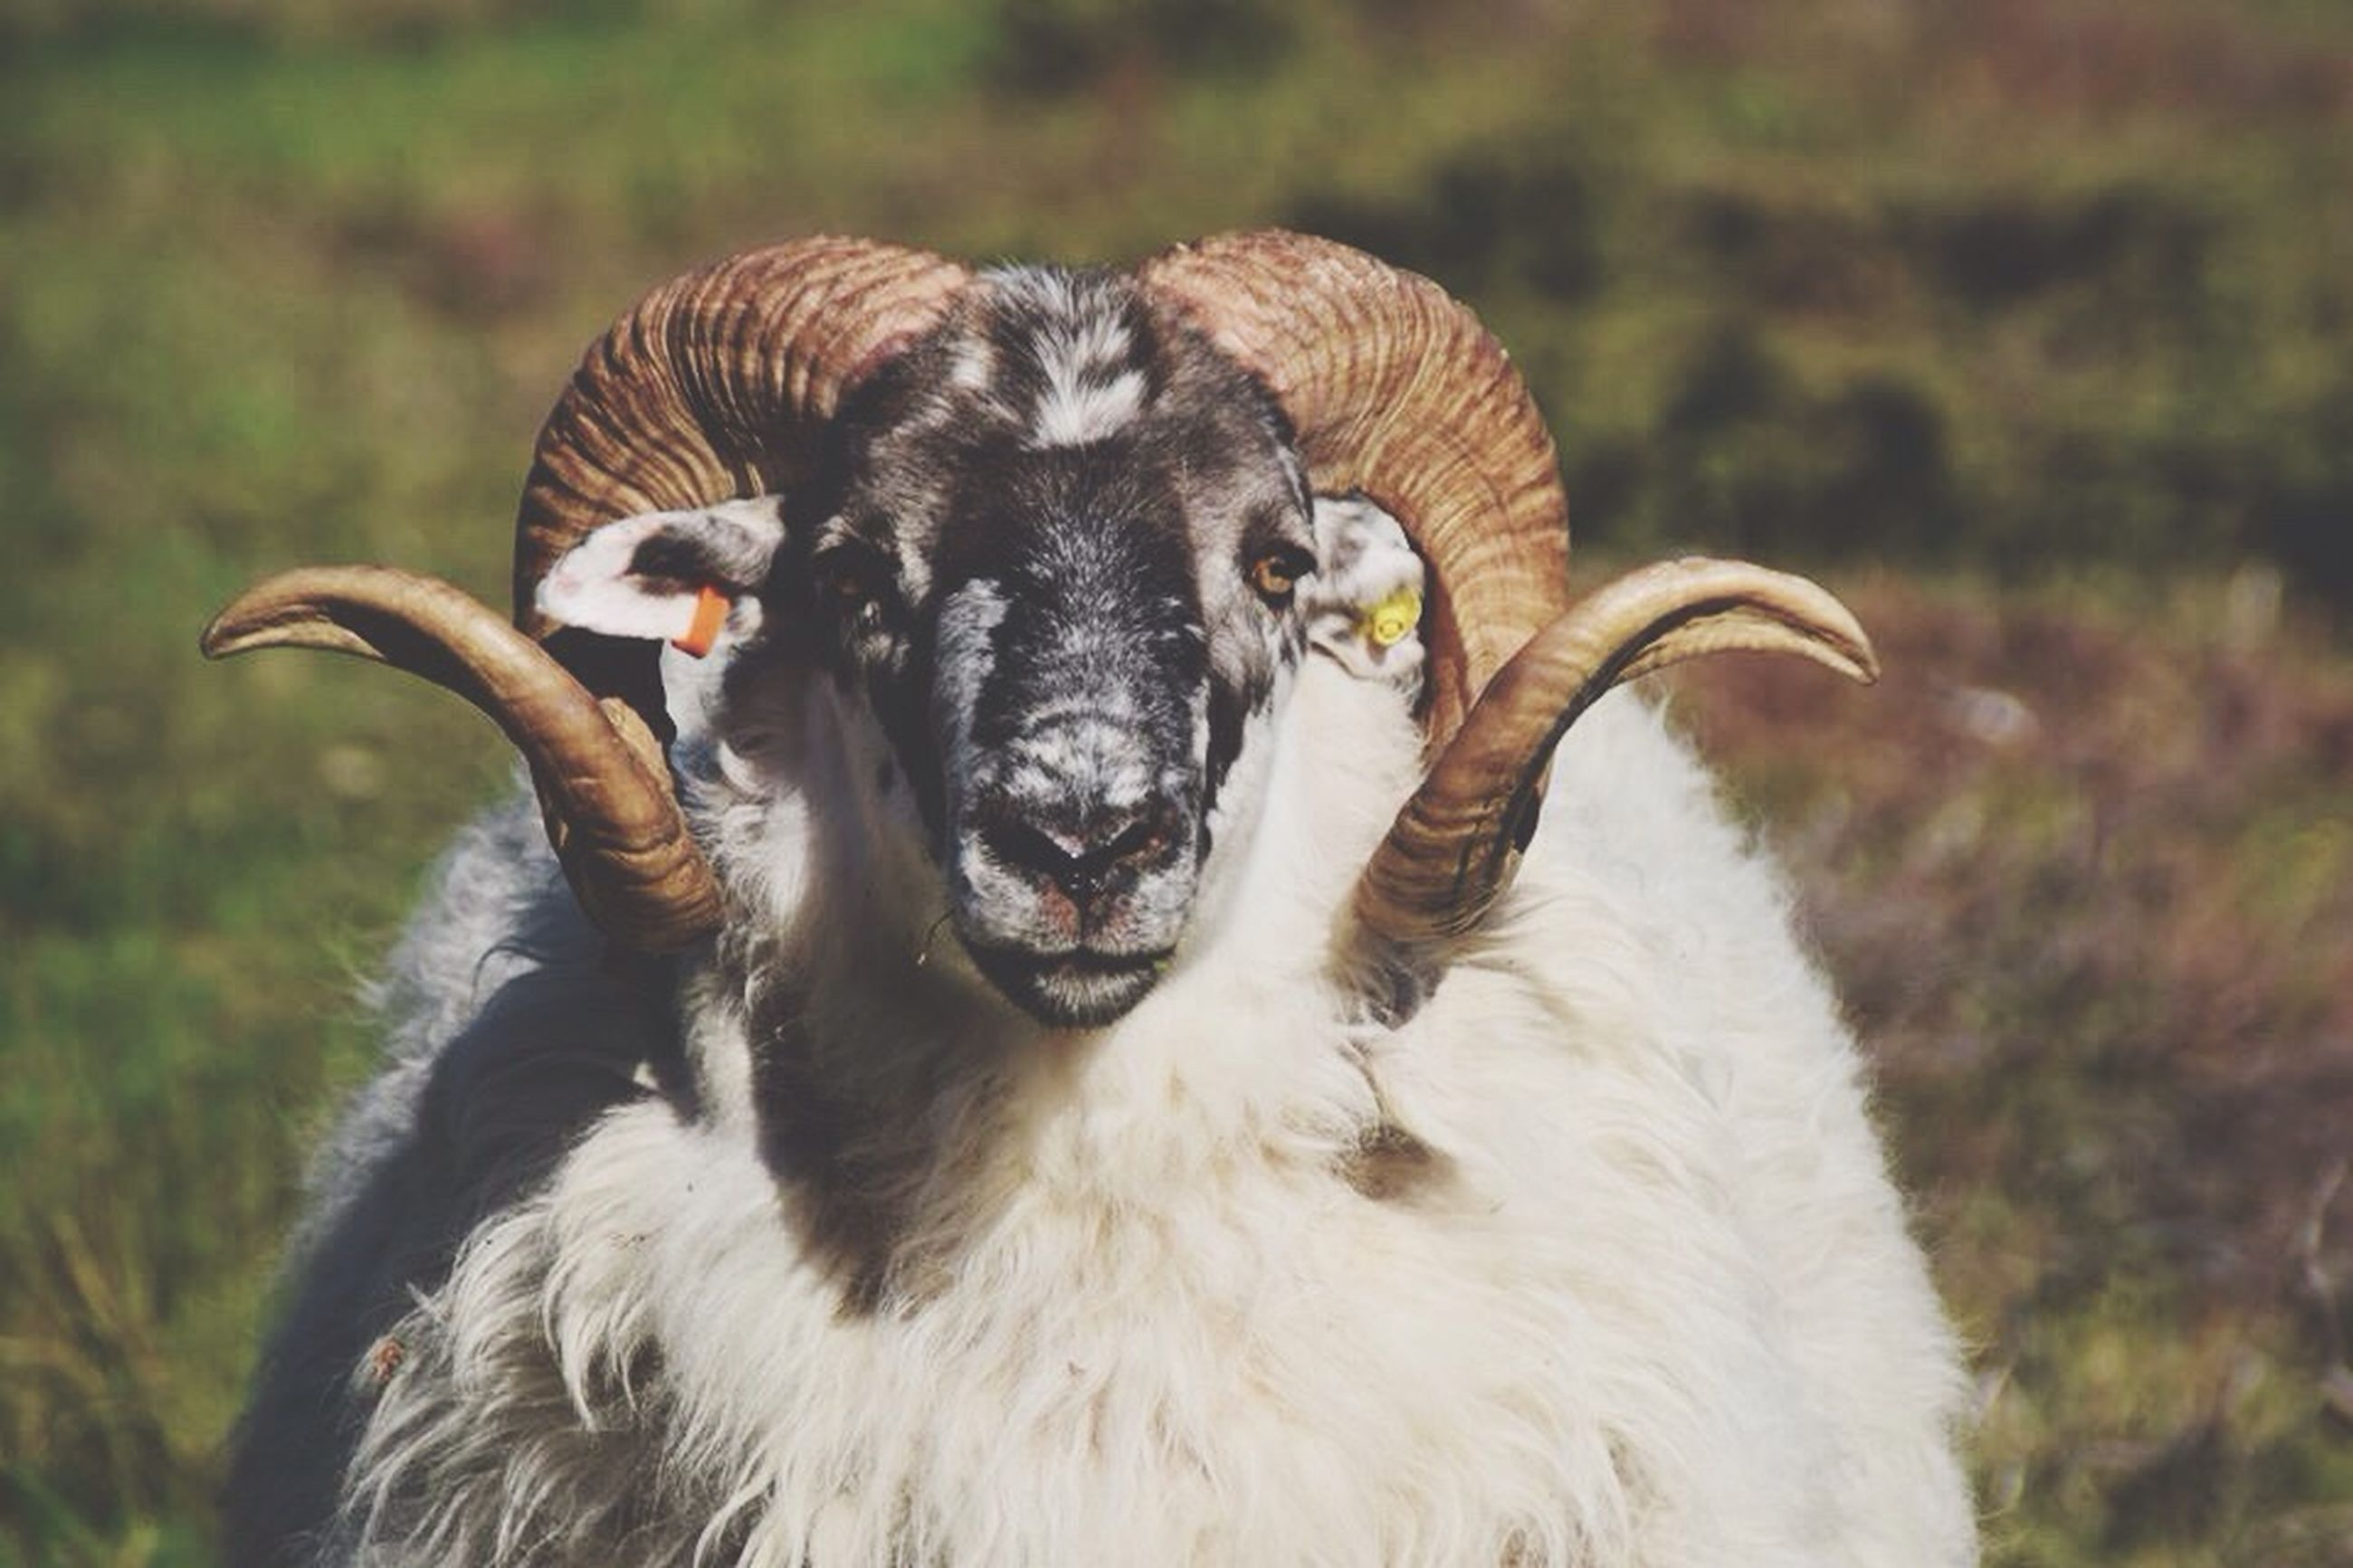 animal themes, one animal, mammal, animals in the wild, wildlife, focus on foreground, field, domestic animals, close-up, animal head, two animals, animal body part, outdoors, nature, young animal, day, portrait, animal hair, zoology, livestock